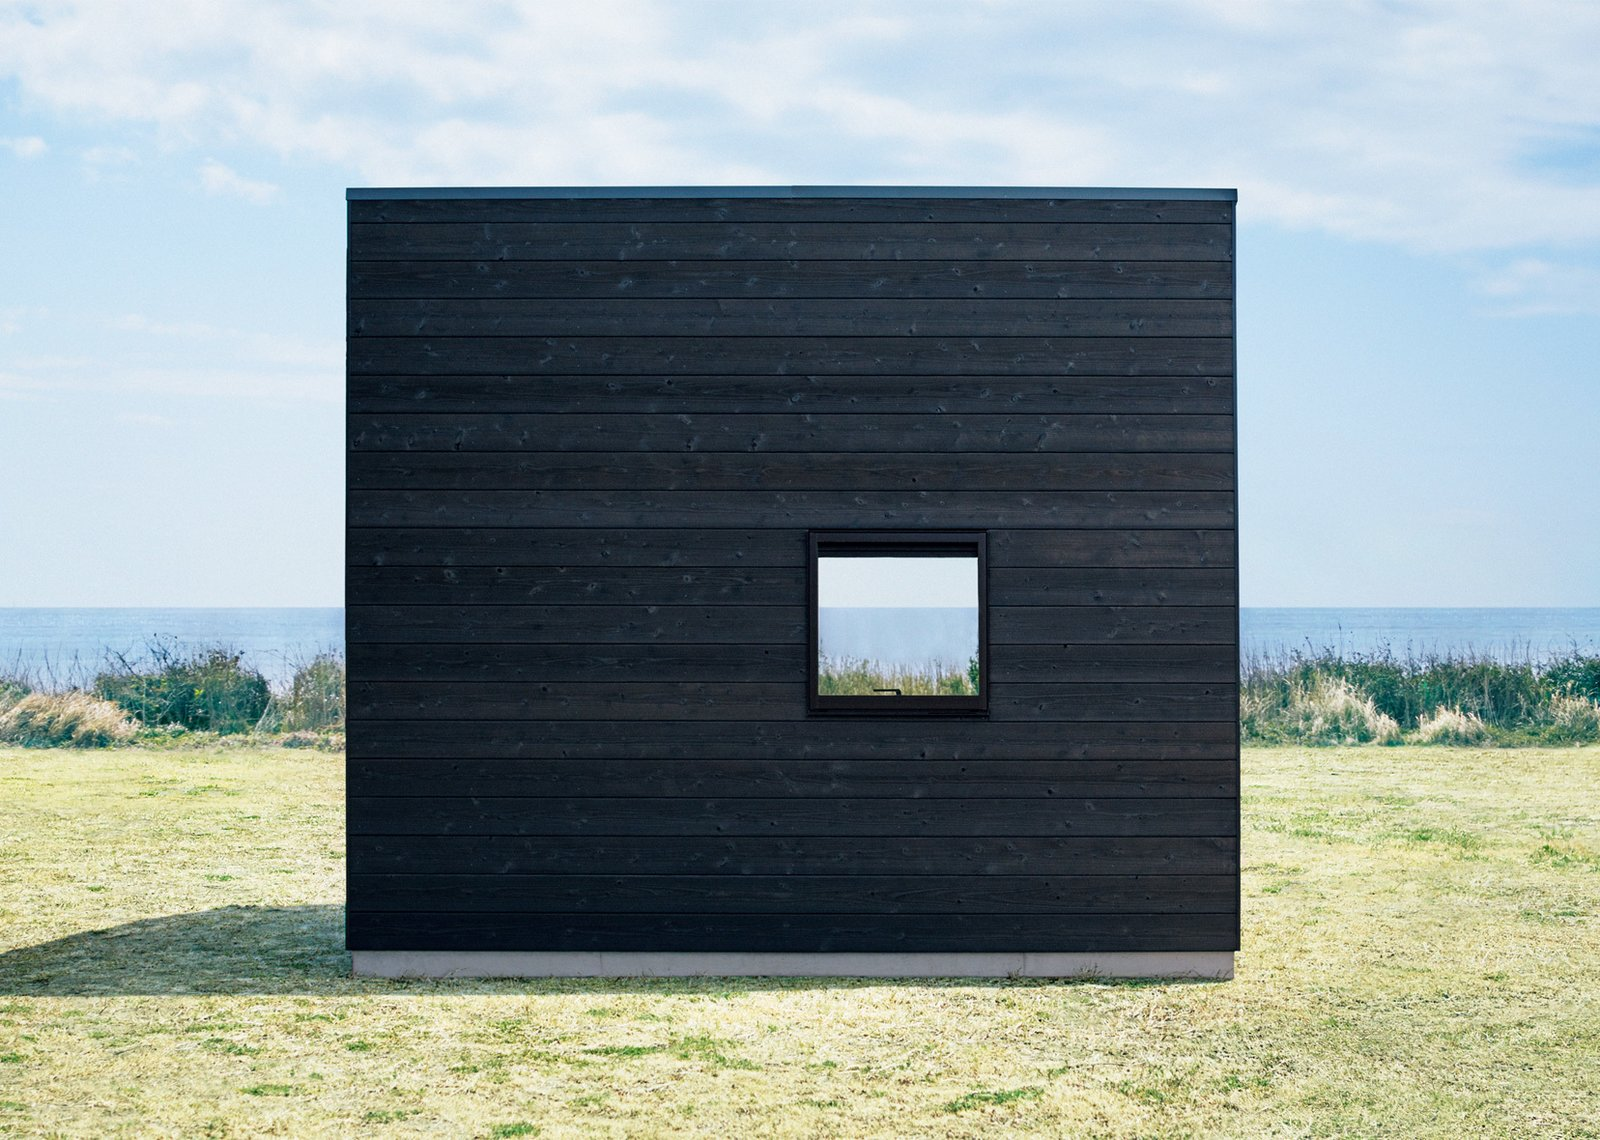 Seeing the hut set against a vast seascape shows how the design allows the structure to be enveloped by the surrounding landscape.  Photo 3 of 7 in The Muji Hut is a Masterful Take on Minimalism